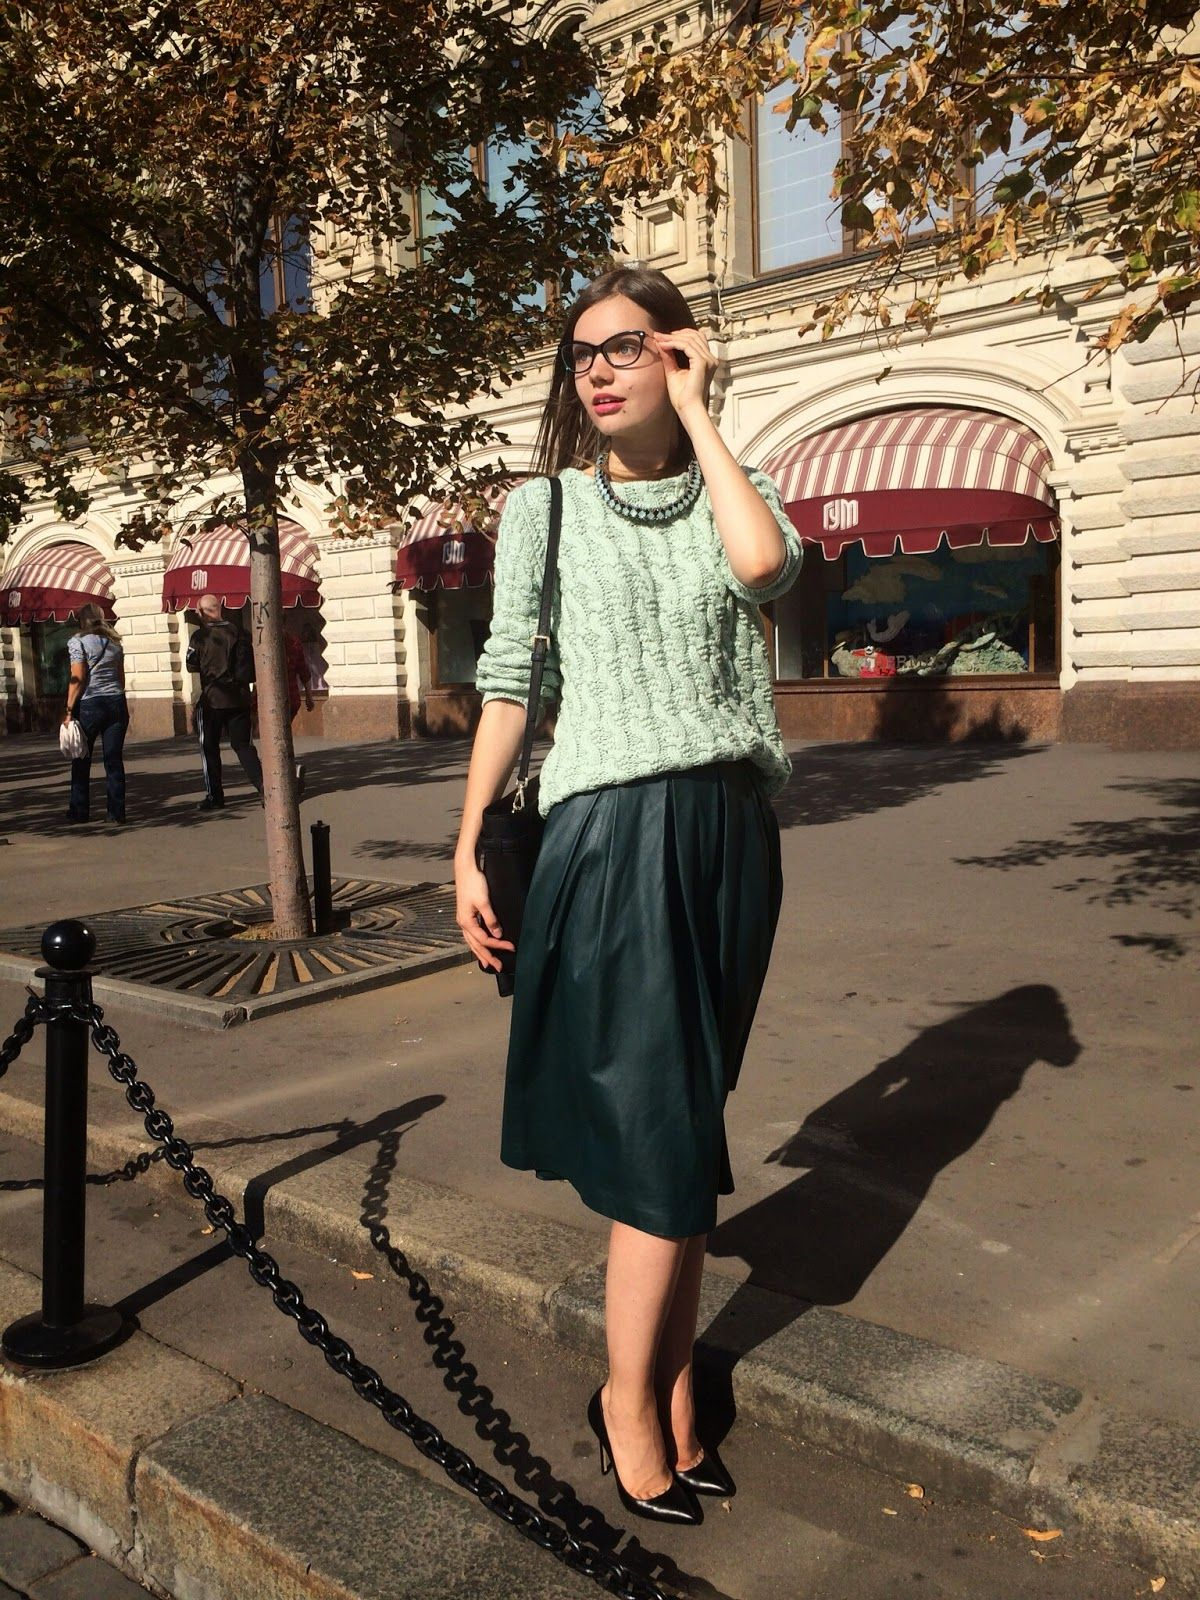 Face to face with style: Shades of green